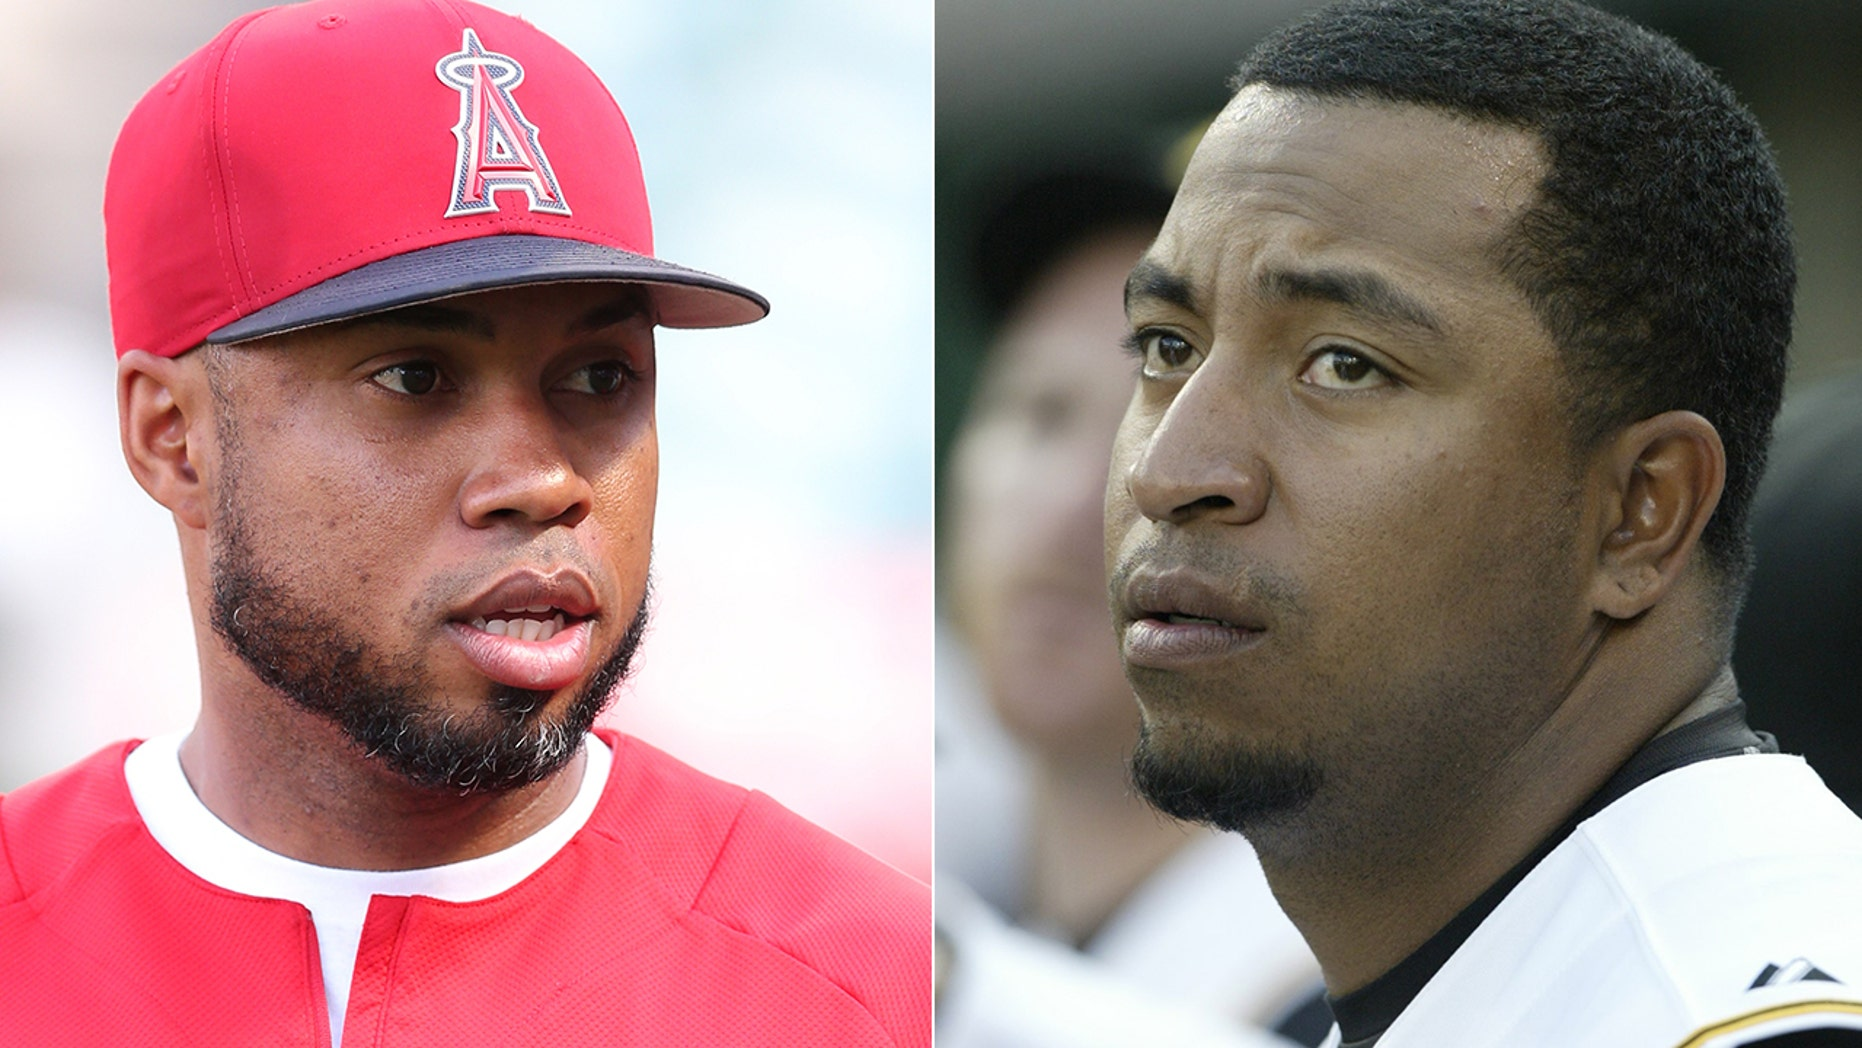 Luis Valbuena and Jose Castillo Dead After Tragic Car Accident in Venezuela